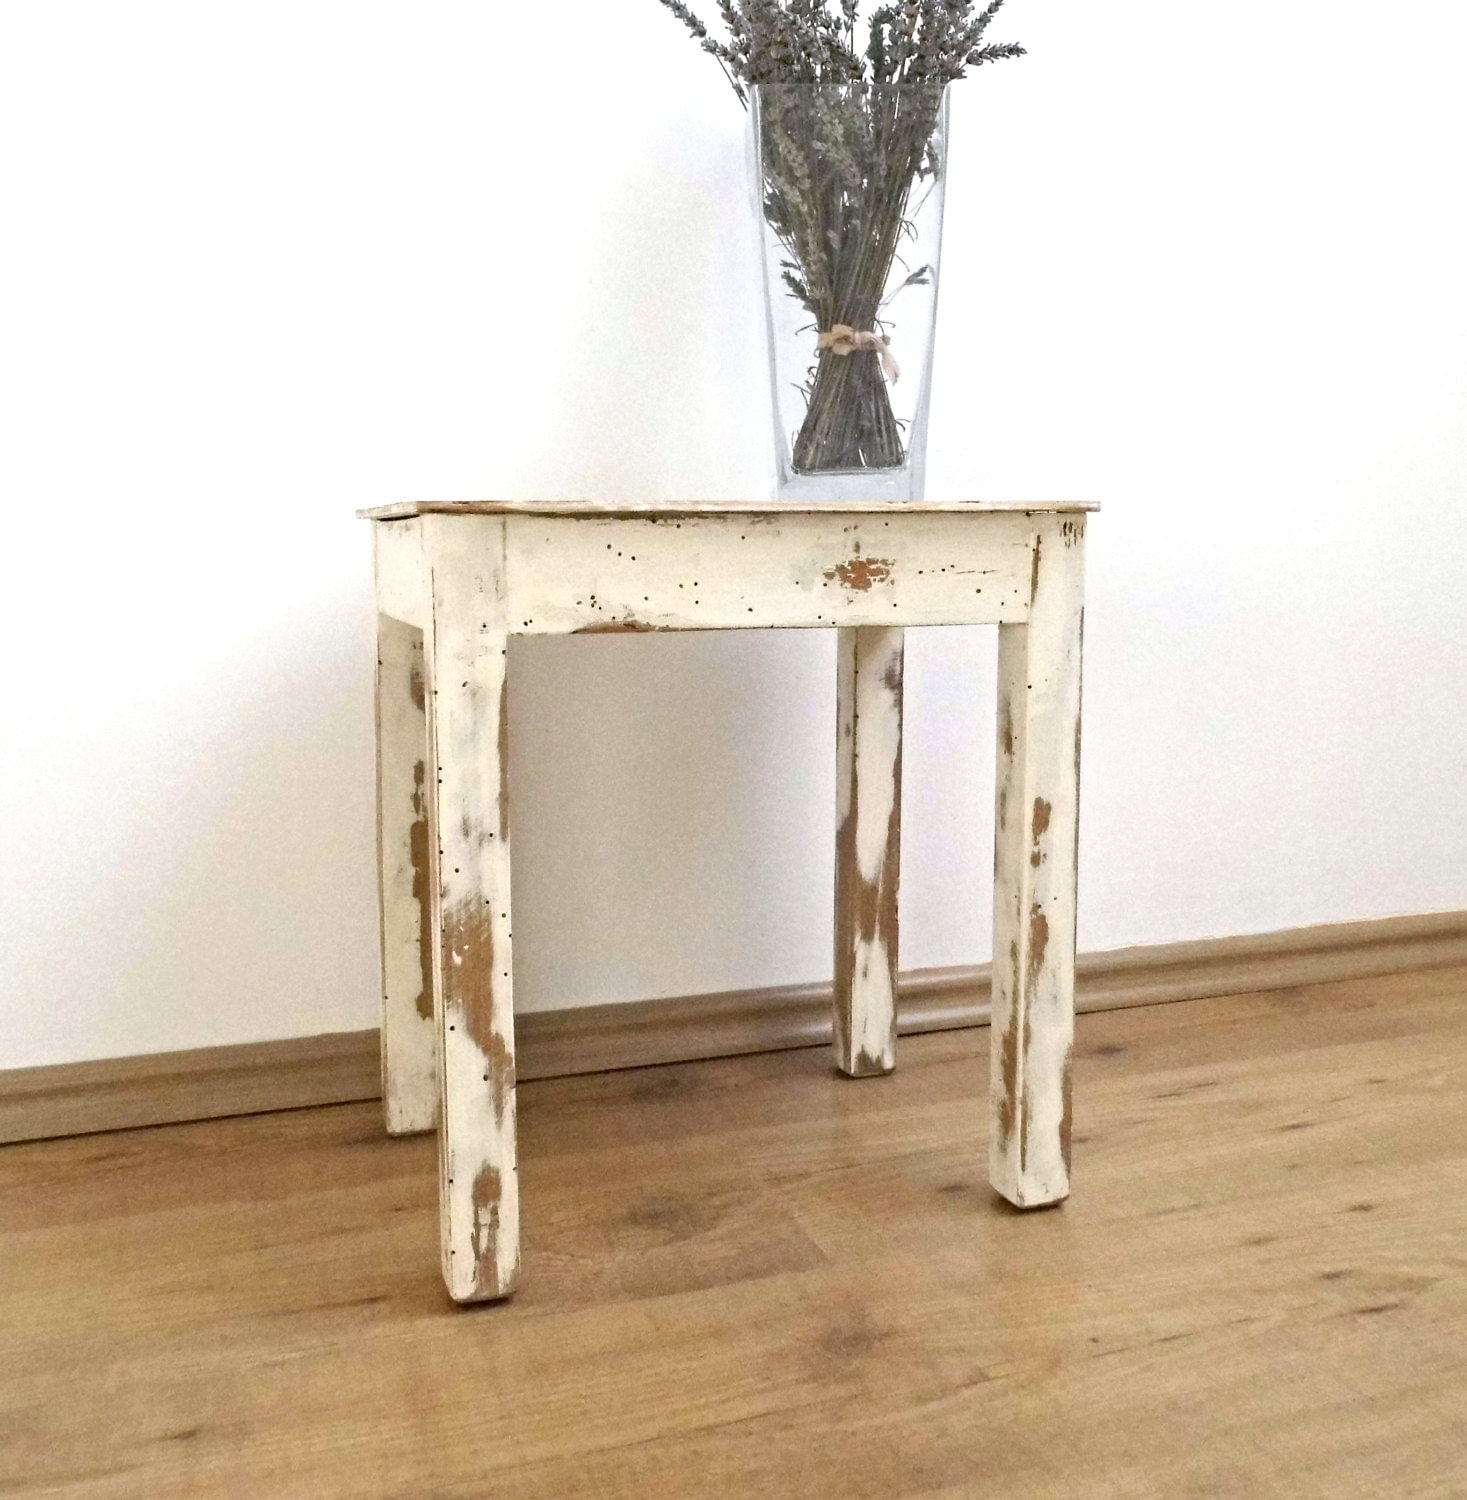 Large Distressed Wood Coffee Table: Vintage Wood Stool White Distressed End Side Coffee Table